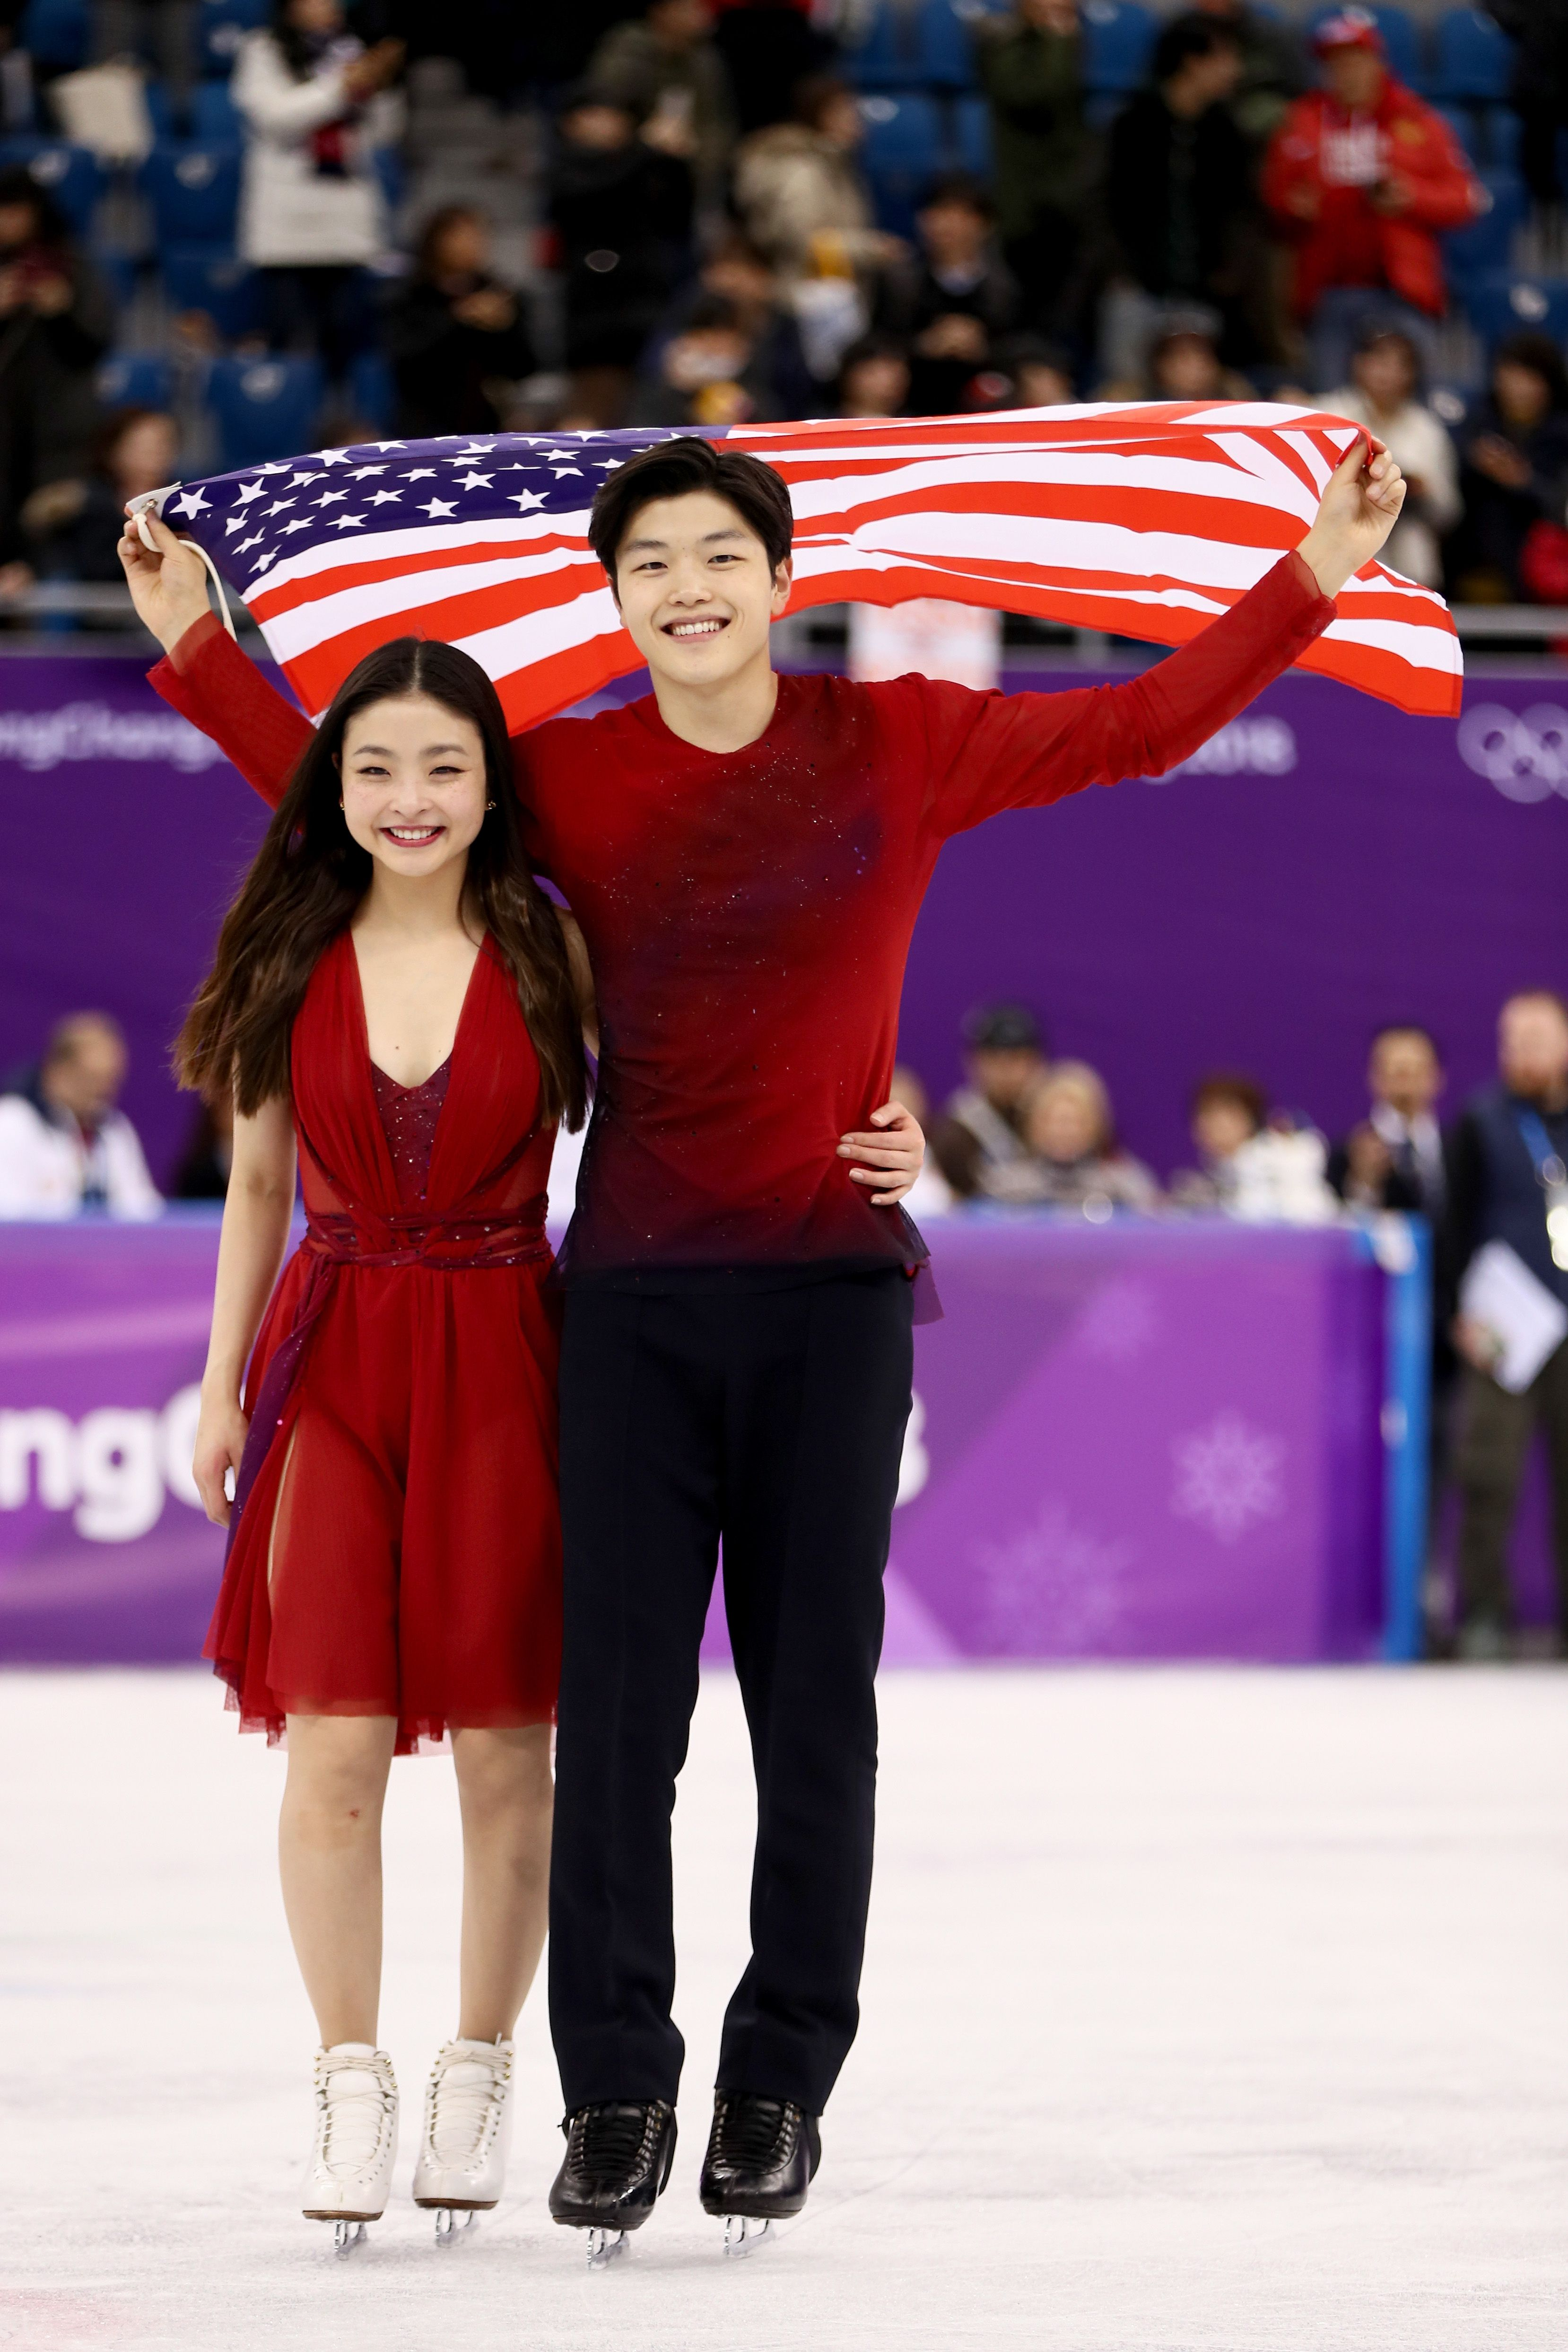 Are the figure skating pairs hookup